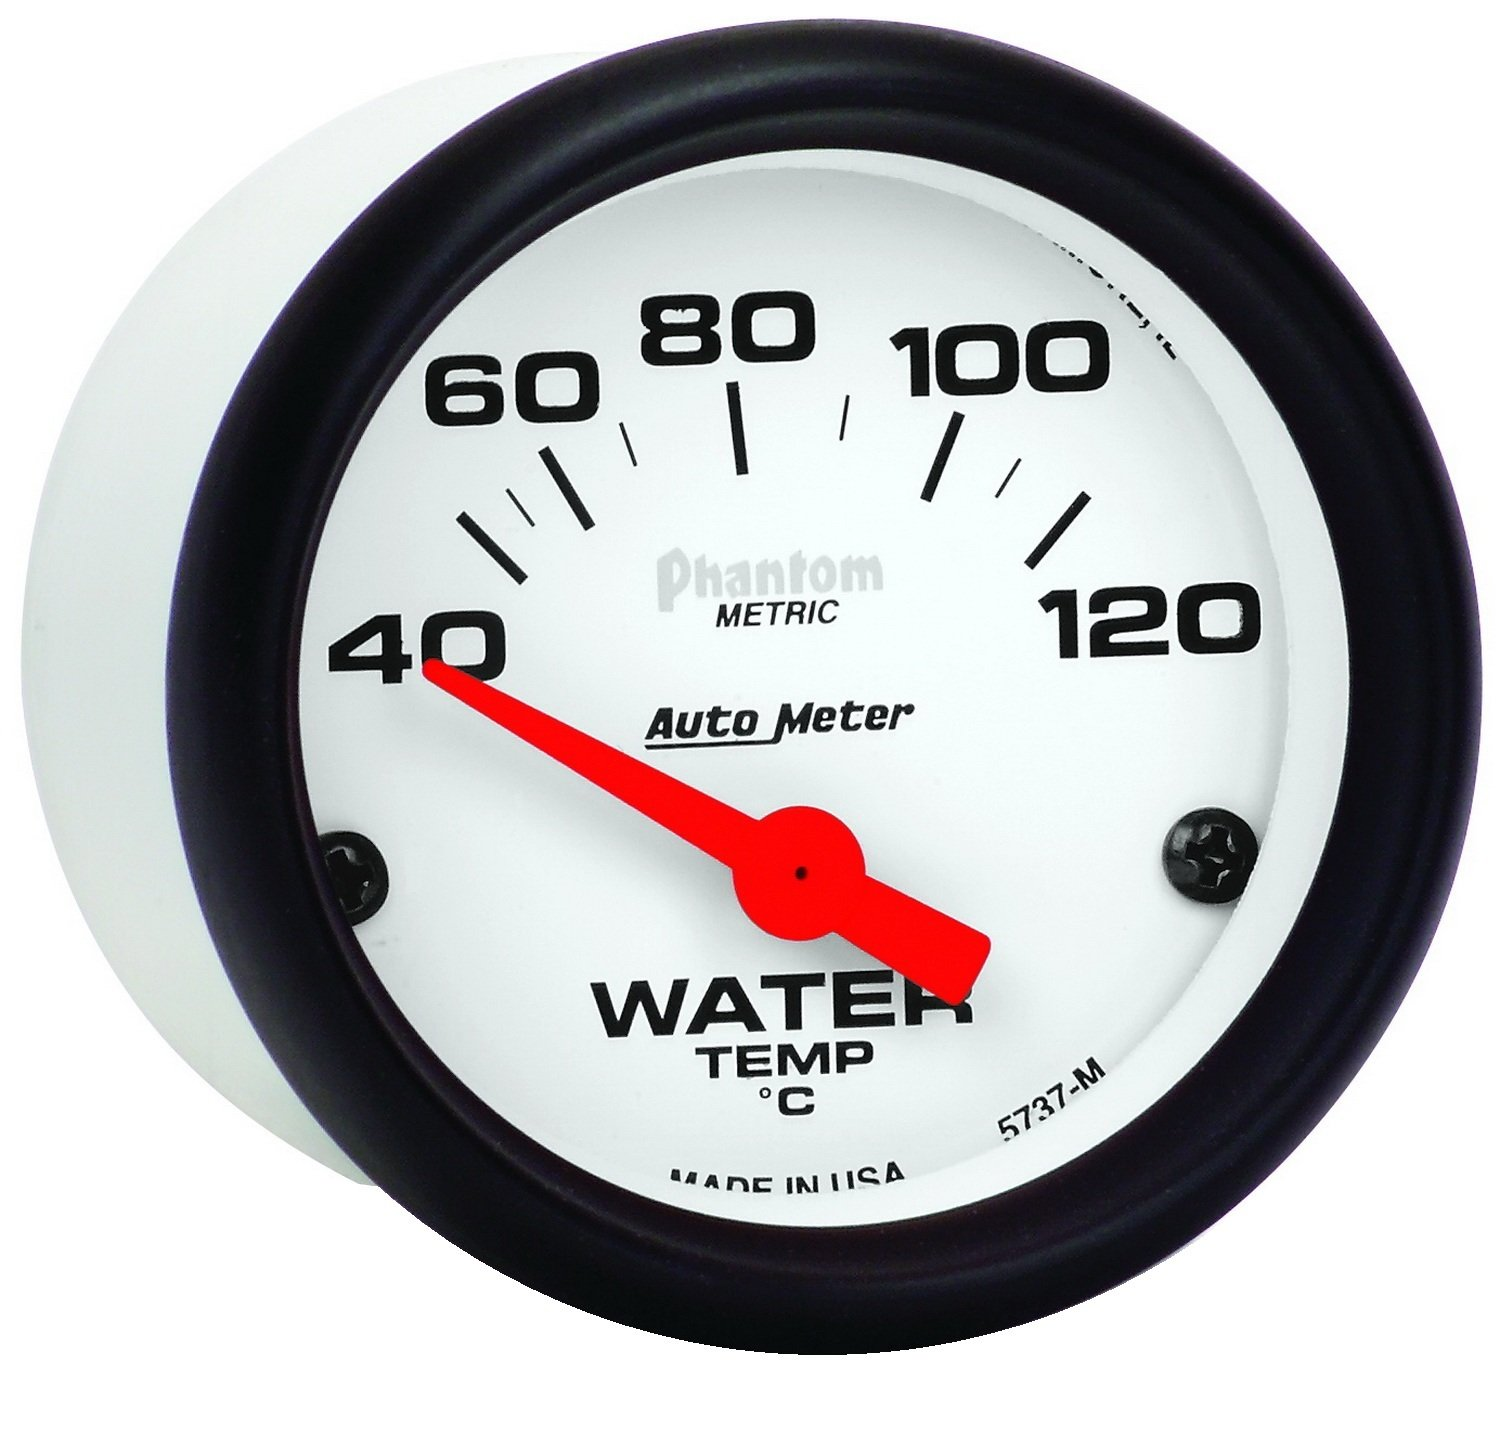 Auto Meter 5737-M Phantom Electric Water Temperature Gauge